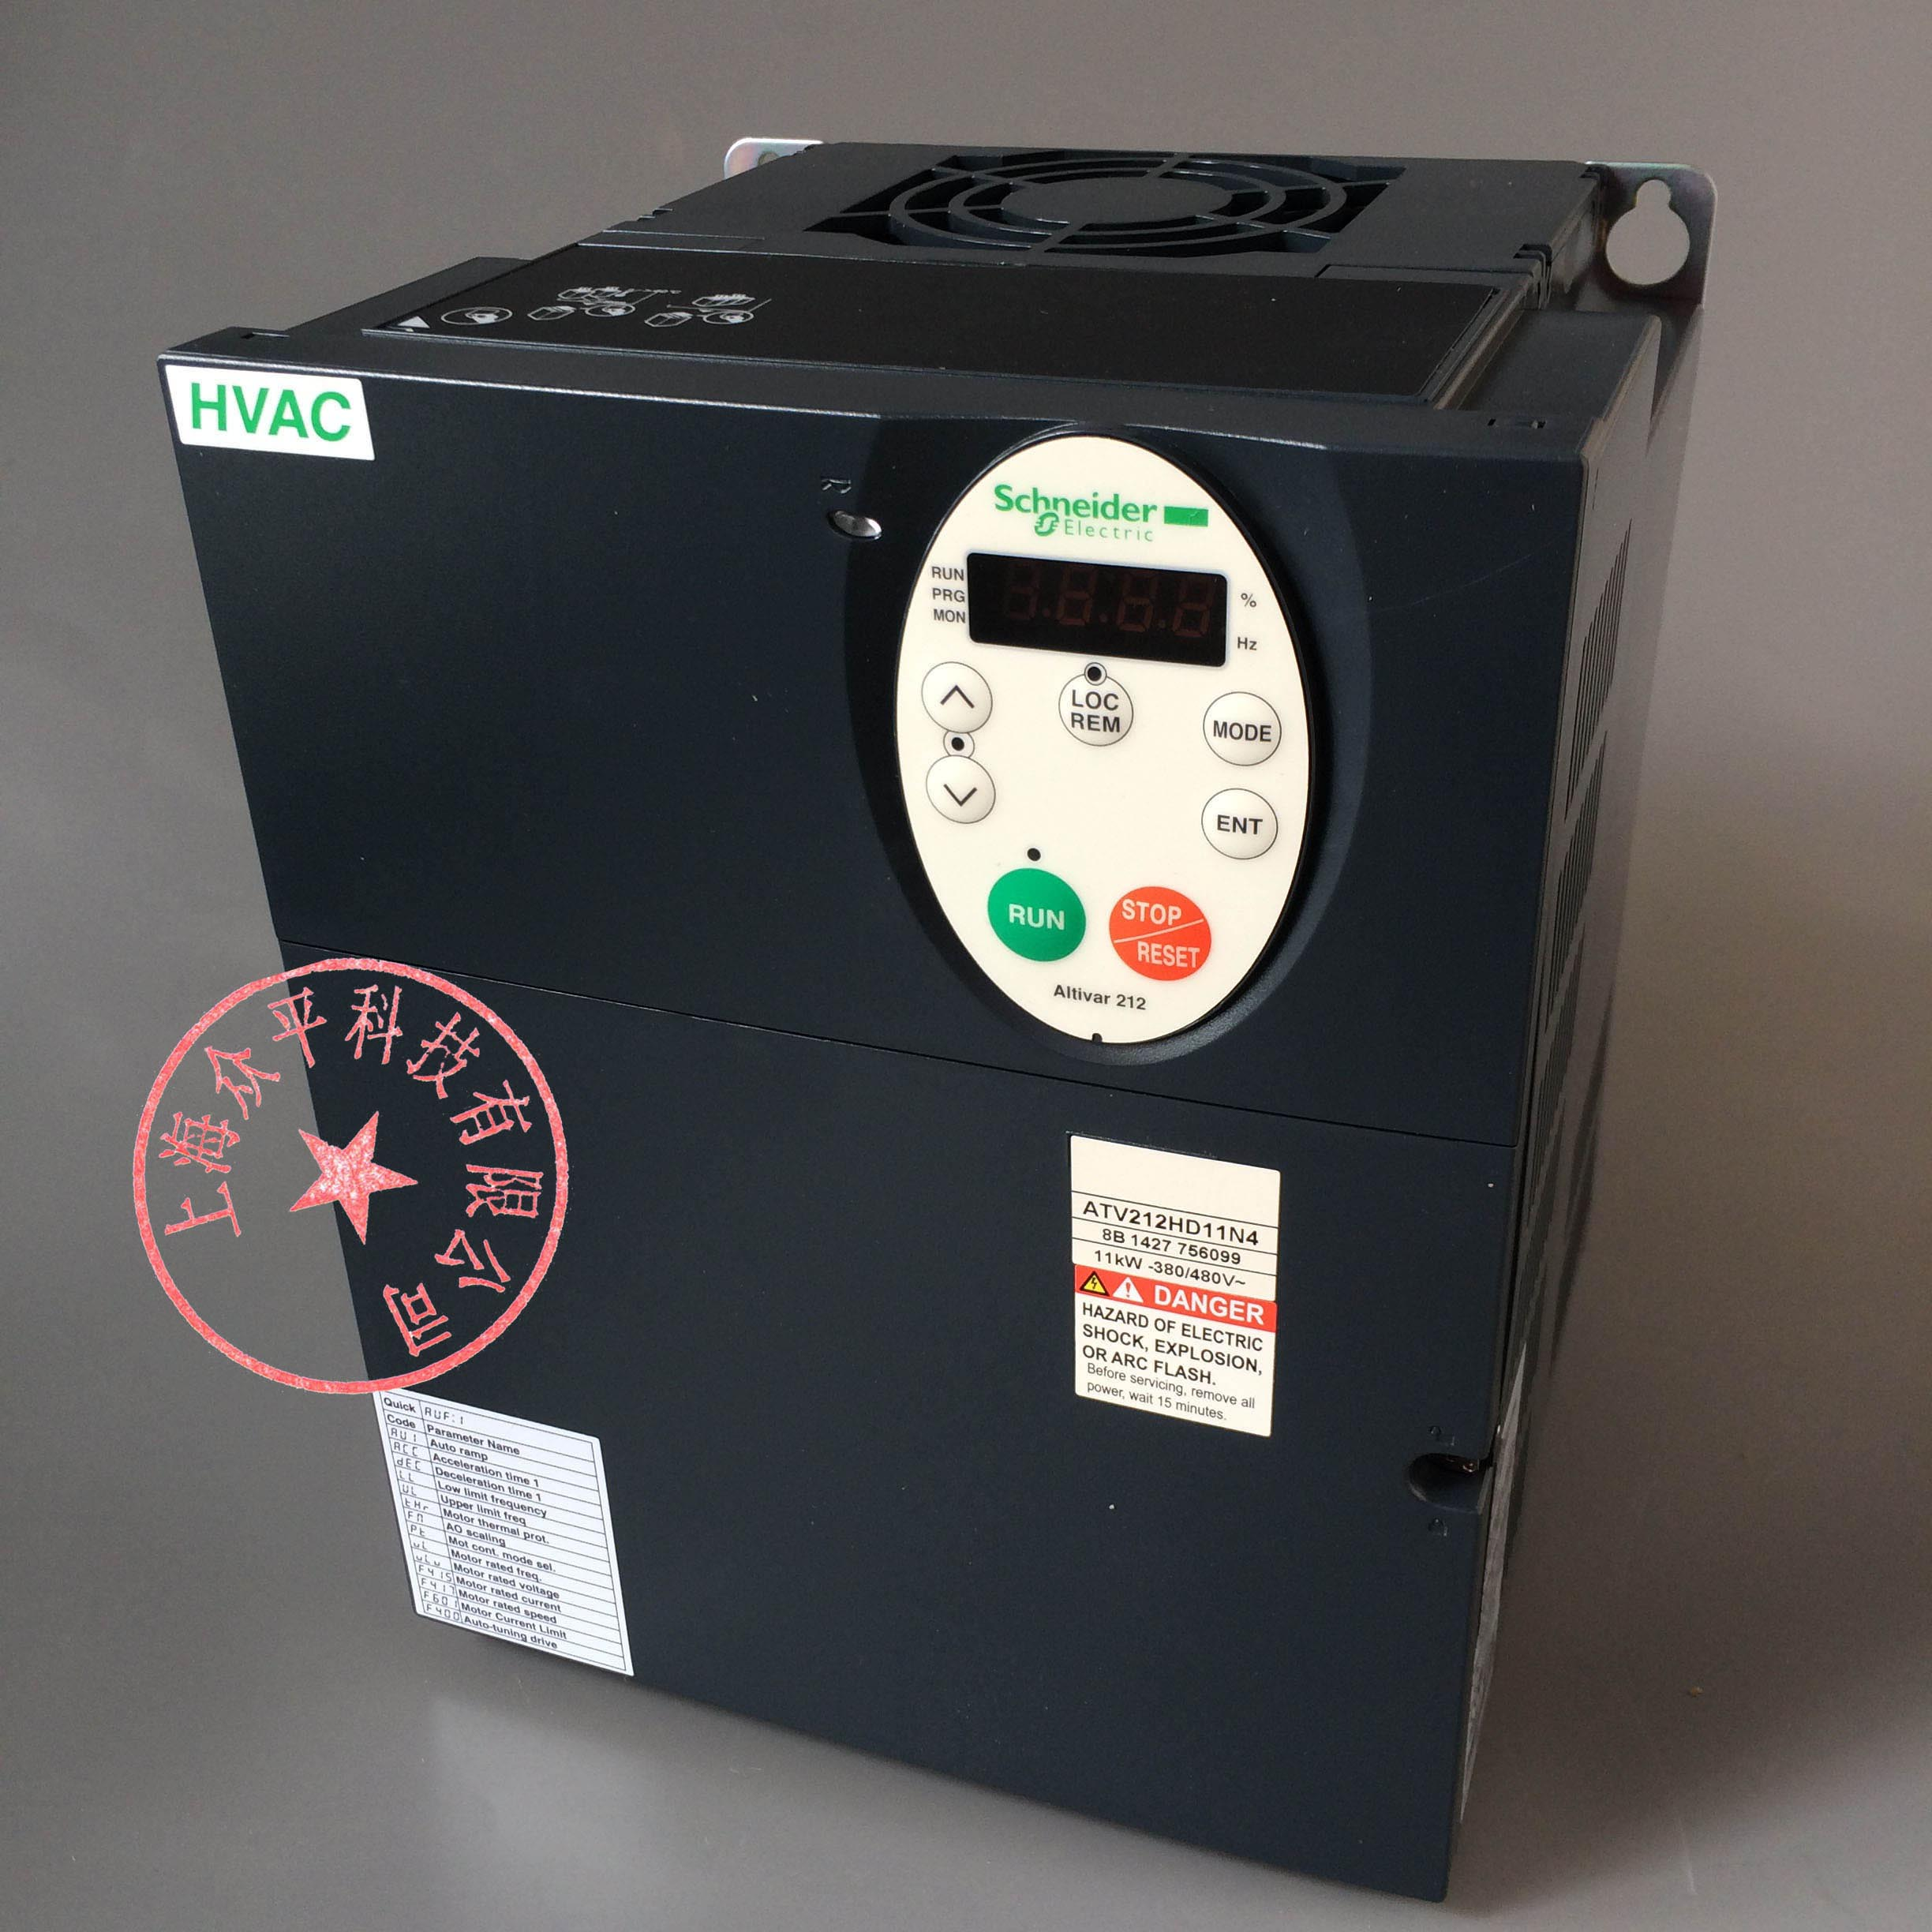 Schneider inverter 15kw ATV212HD15N4 three-phase 380... 480 v cheap reservation required